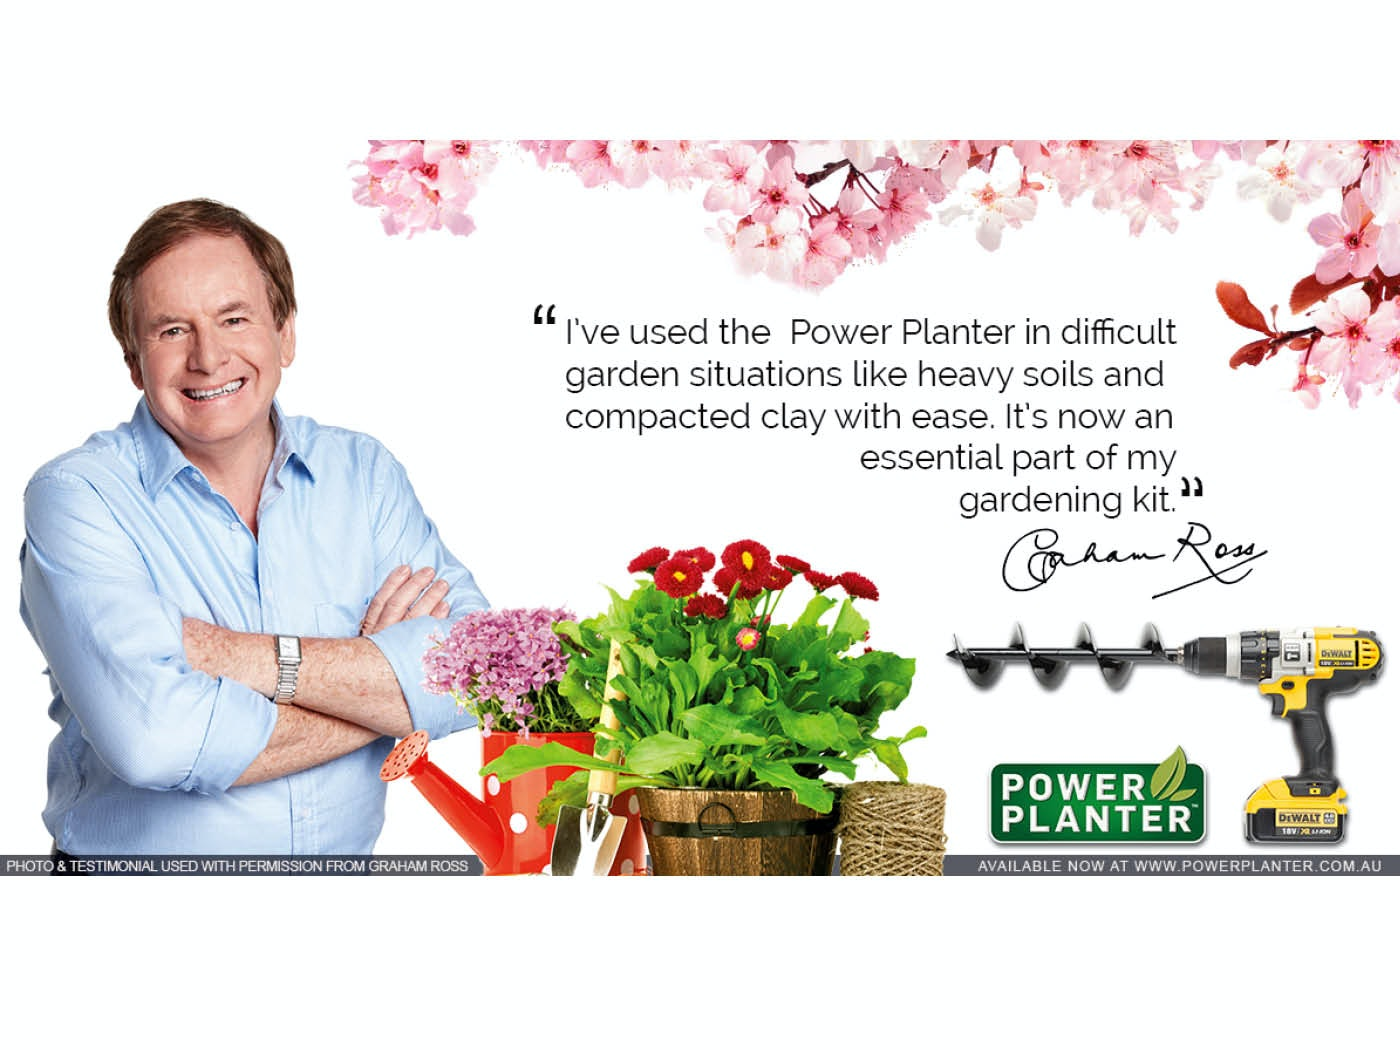 Power Planter 307 207 sweepstakes